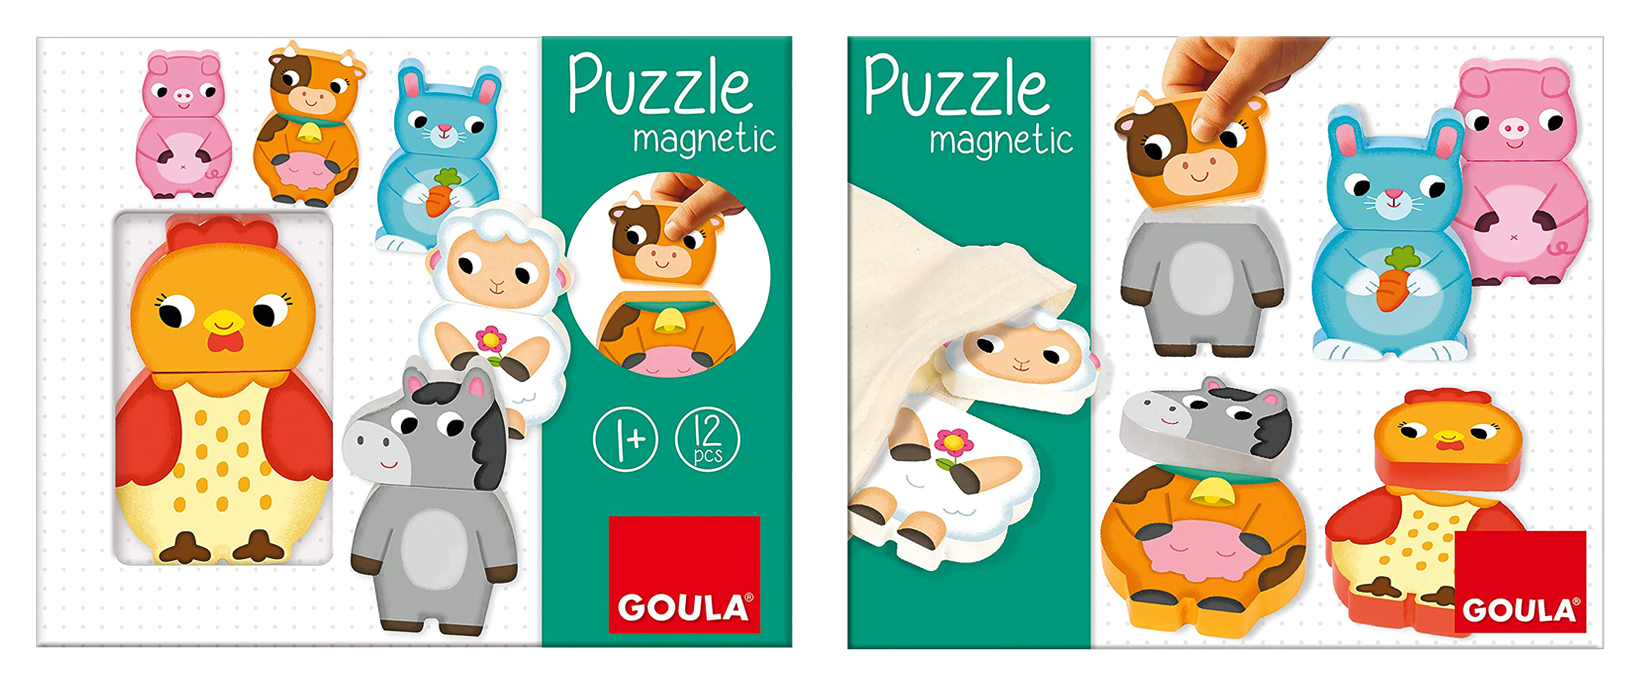 puzzles magneticos 3.jpg